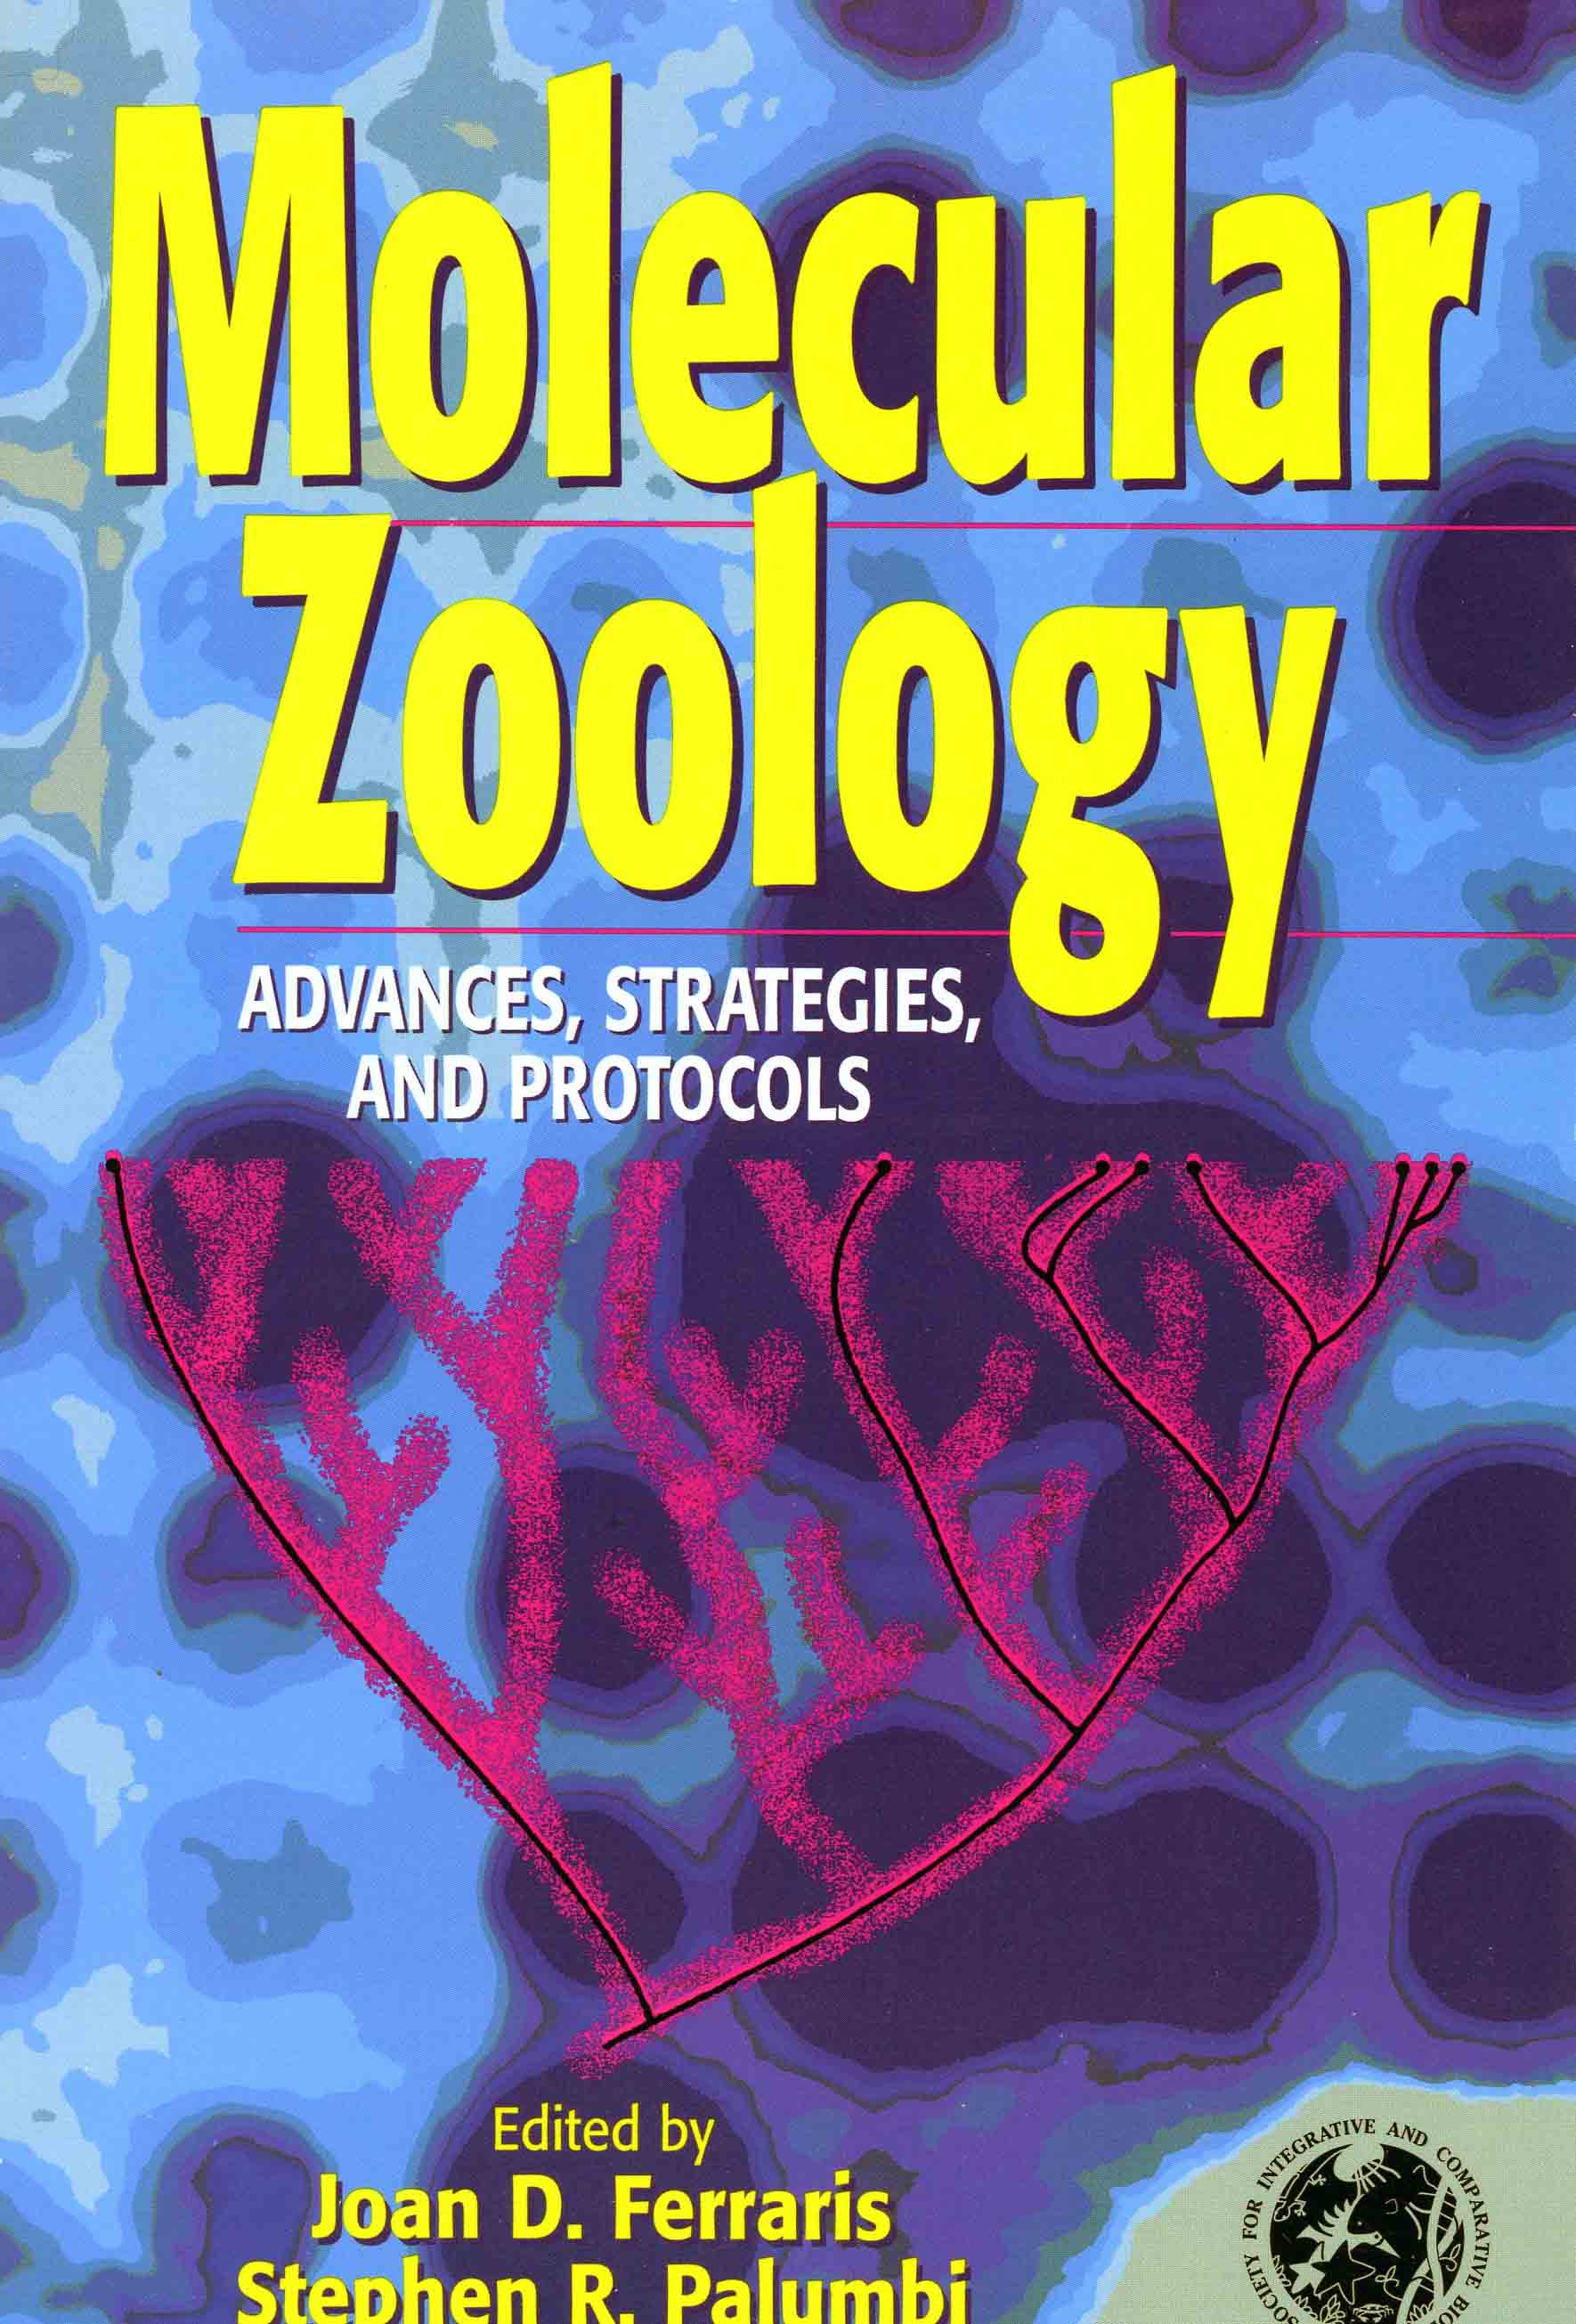 Image for Molecular Zoology: Advances, Strategies, and Protocols,